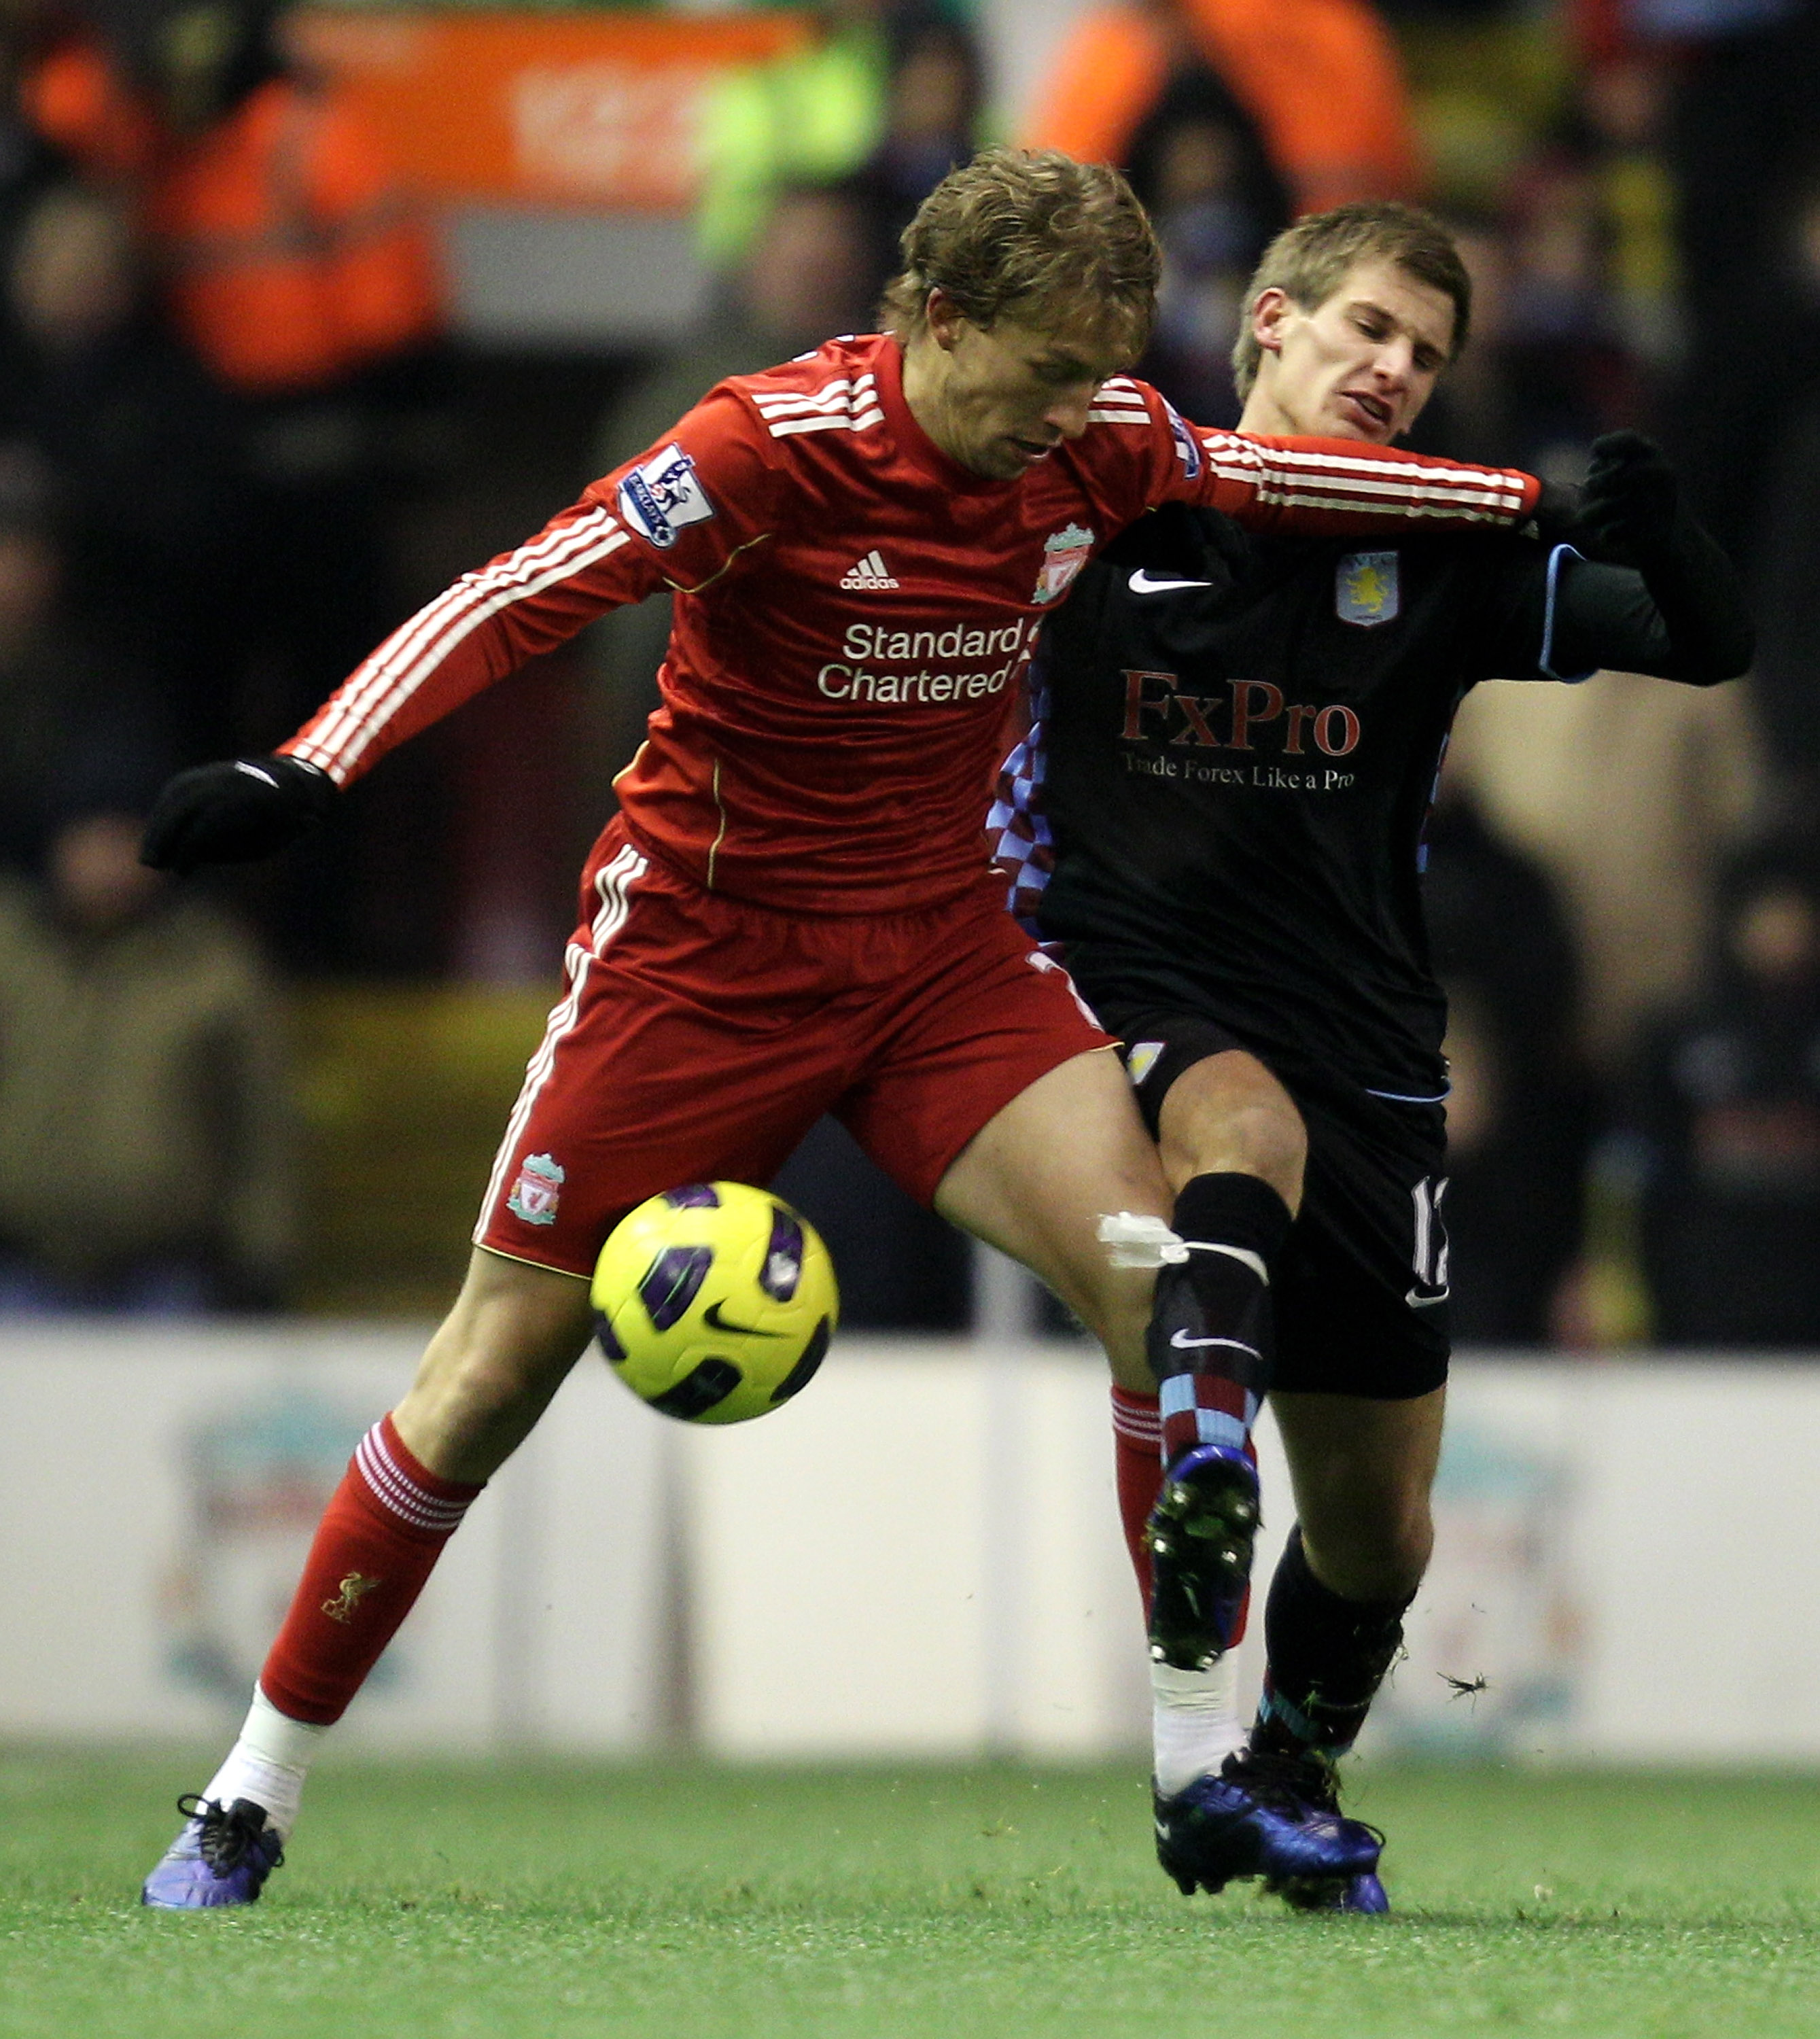 LIVERPOOL, ENGLAND - DECEMBER 06:  Marc Albrighton of Aston Villa tangles with Lucas of Liverpool during the Barclays Premier League match between Liverpool and Aston Villa at Anfield on December 6, 2010 in Liverpool, England.  (Photo by Mark Thompson/Get